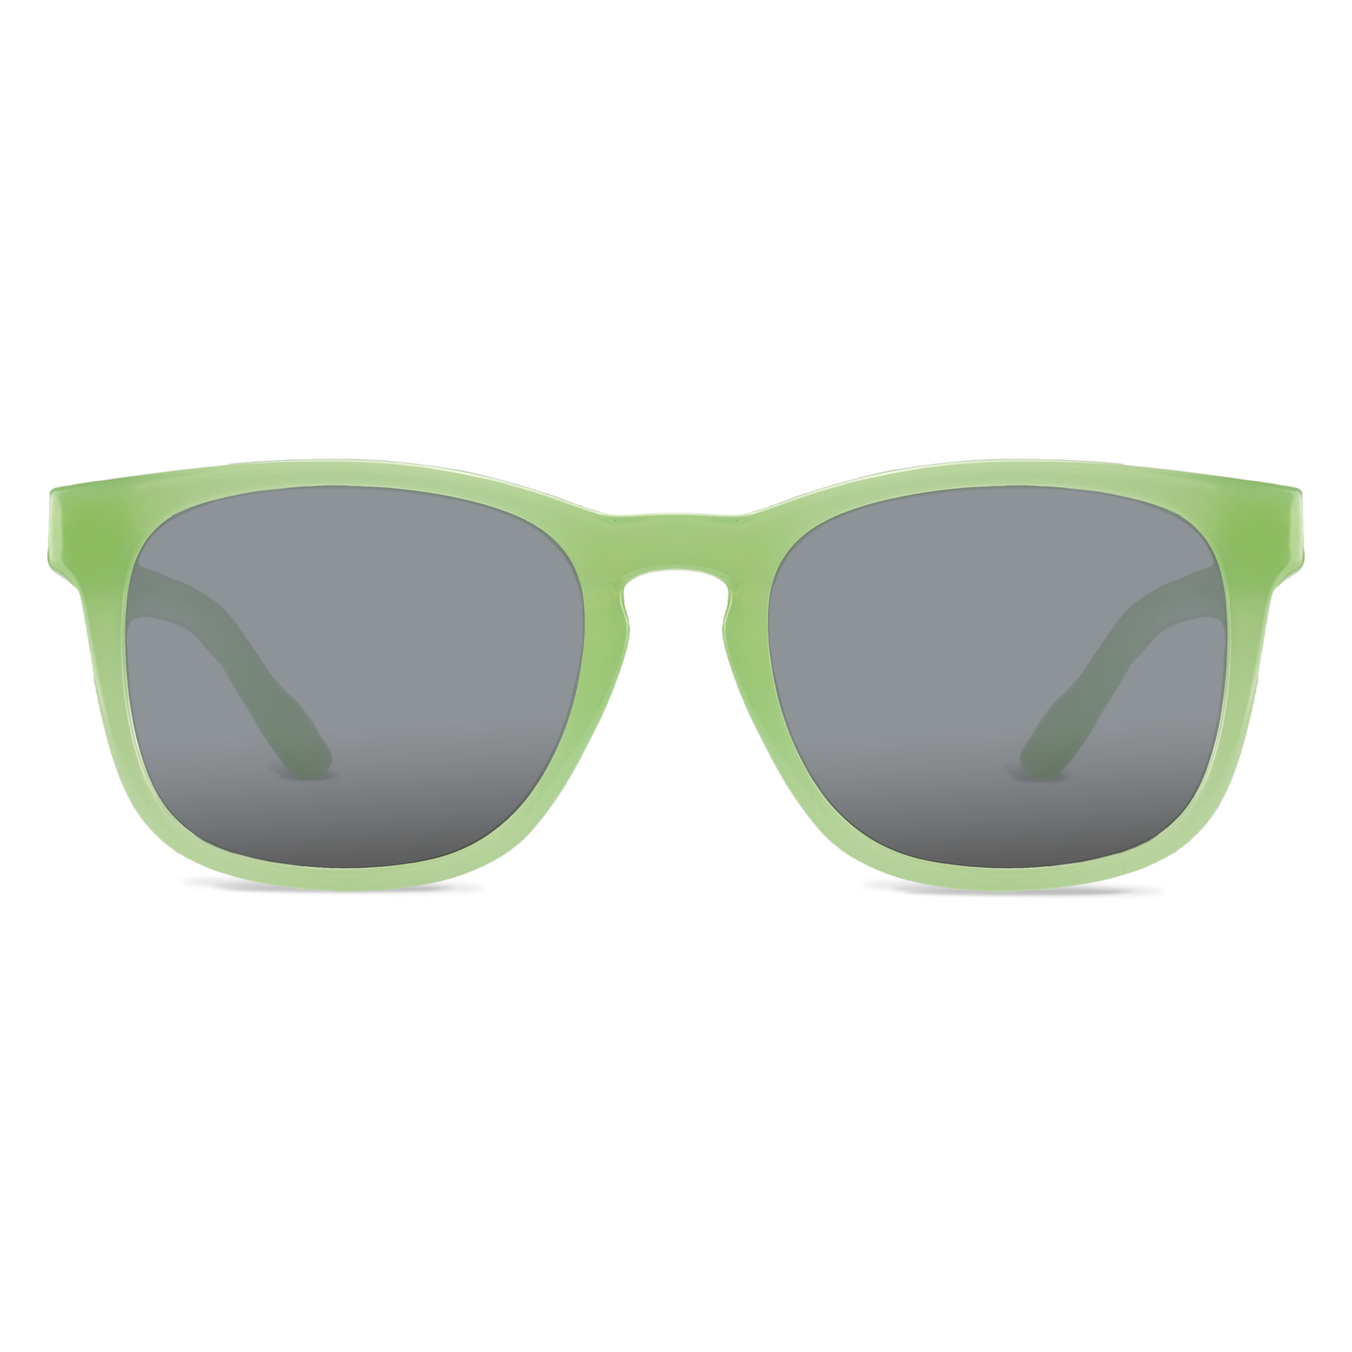 Bonito Eco-friendly Sunglasses | Pela